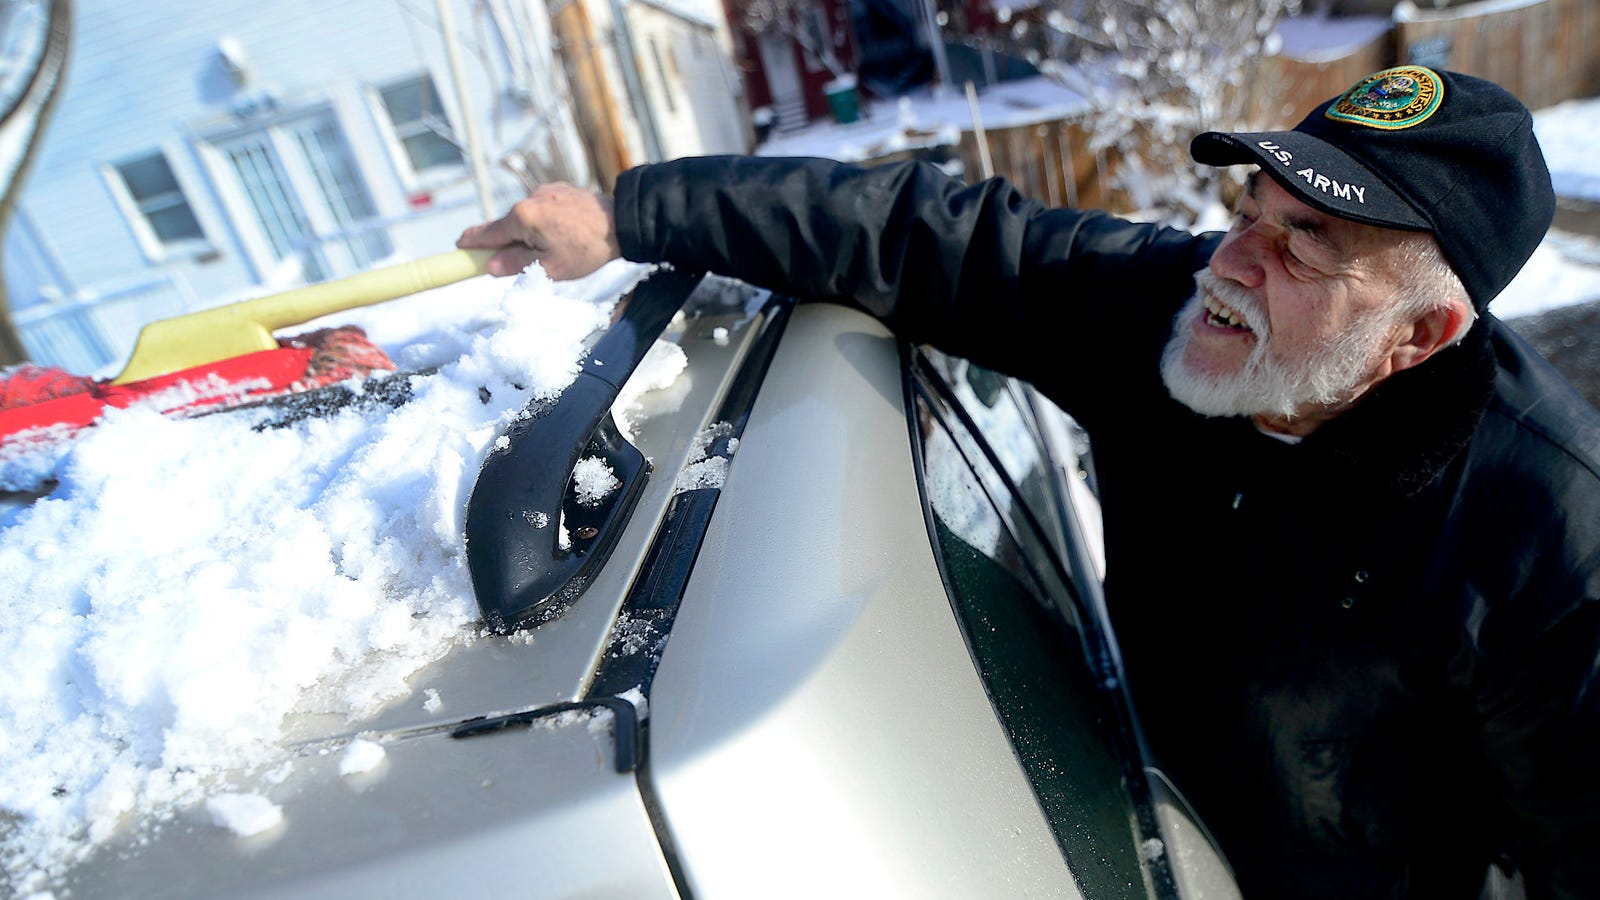 Anibal Maceira, of Hagerstown, Md., cleans snow off the roof of his car Monday morning, Jan. 14, 2019, after a winter storm brought about six inches of snow to the Tri-State area over the weekend.